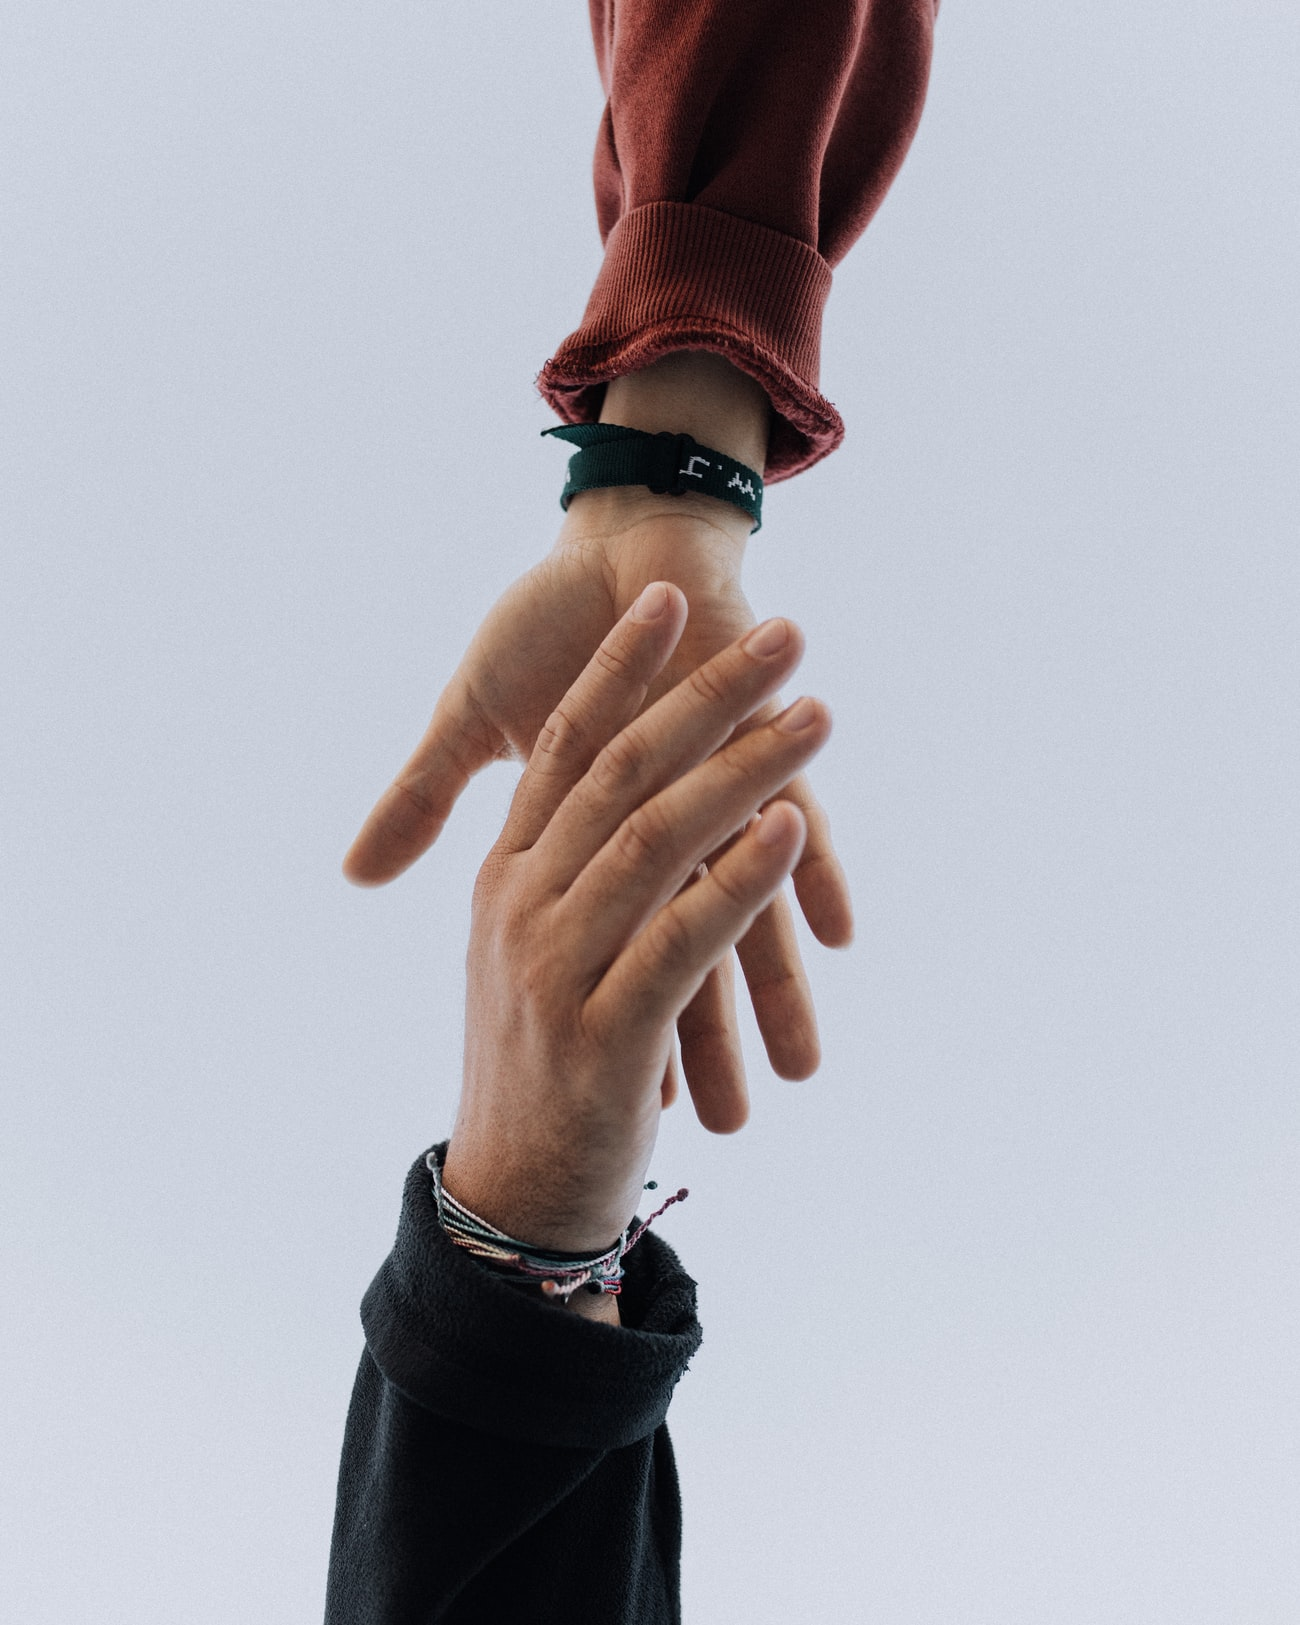 A hand reaching up to another hand